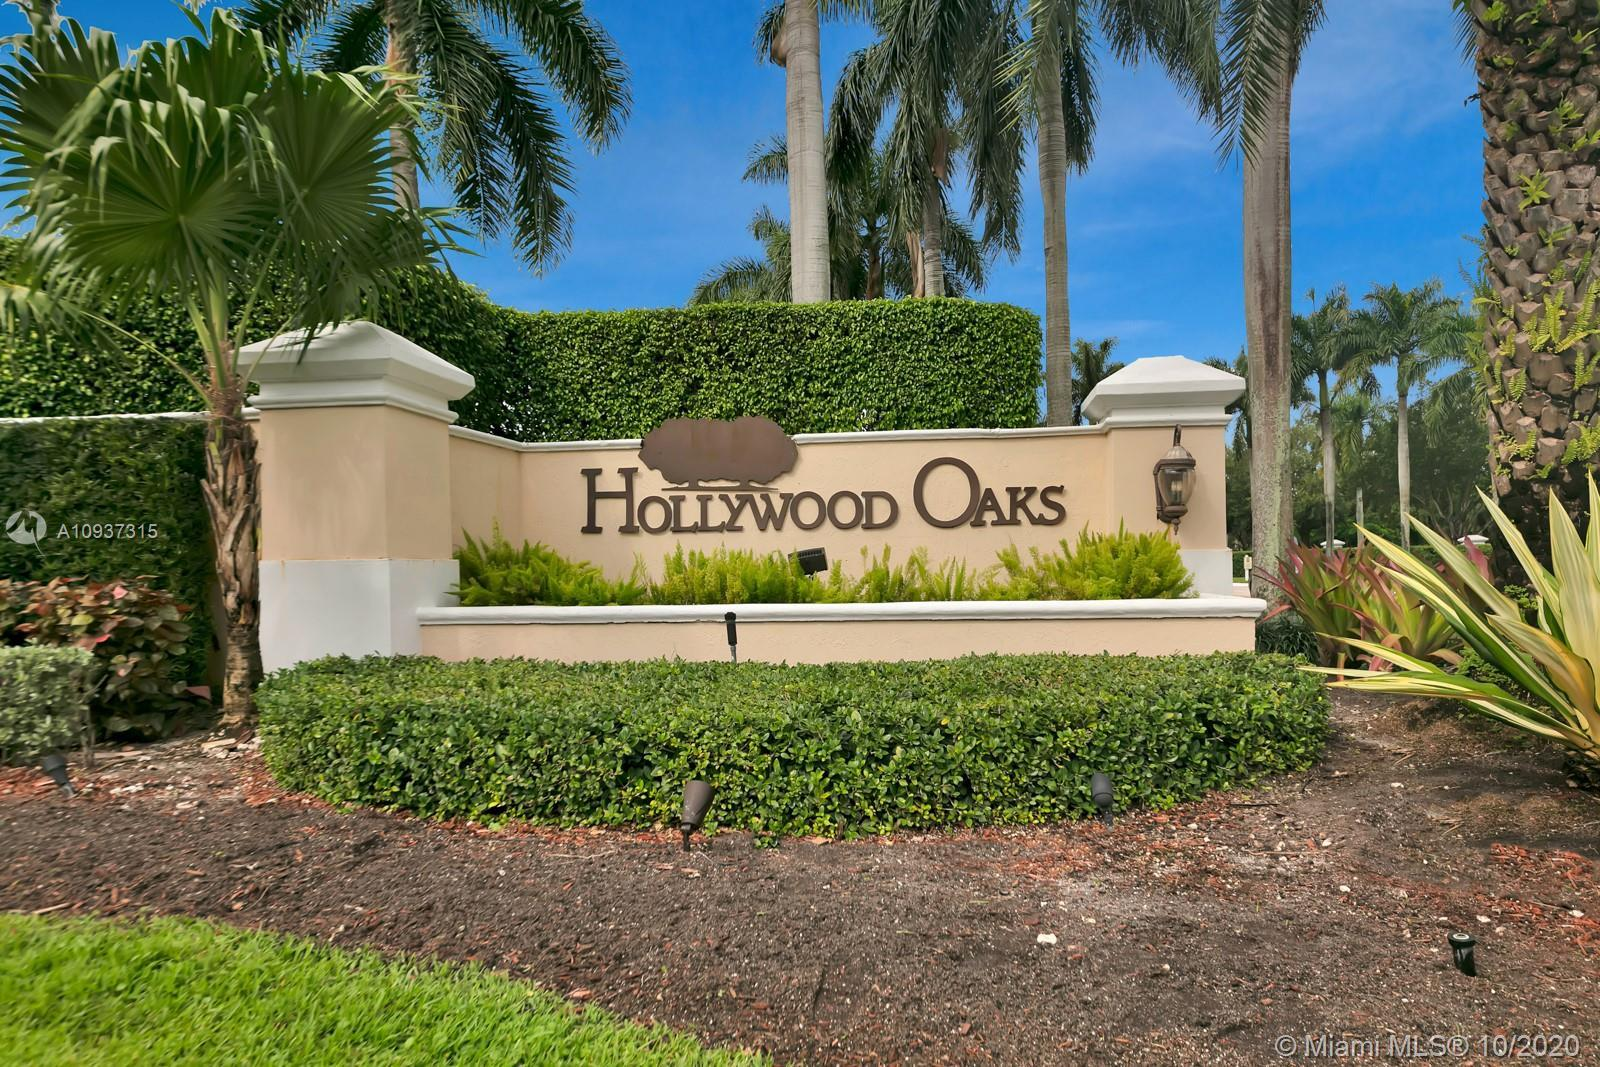 HOLLYWOOD OAKS AT HIS BEST.  FEATURING 7 BEDS/5.5 -2 STORY HOUSE, 3 CAR GARAGE , BRIGHT AND SPACIOUS